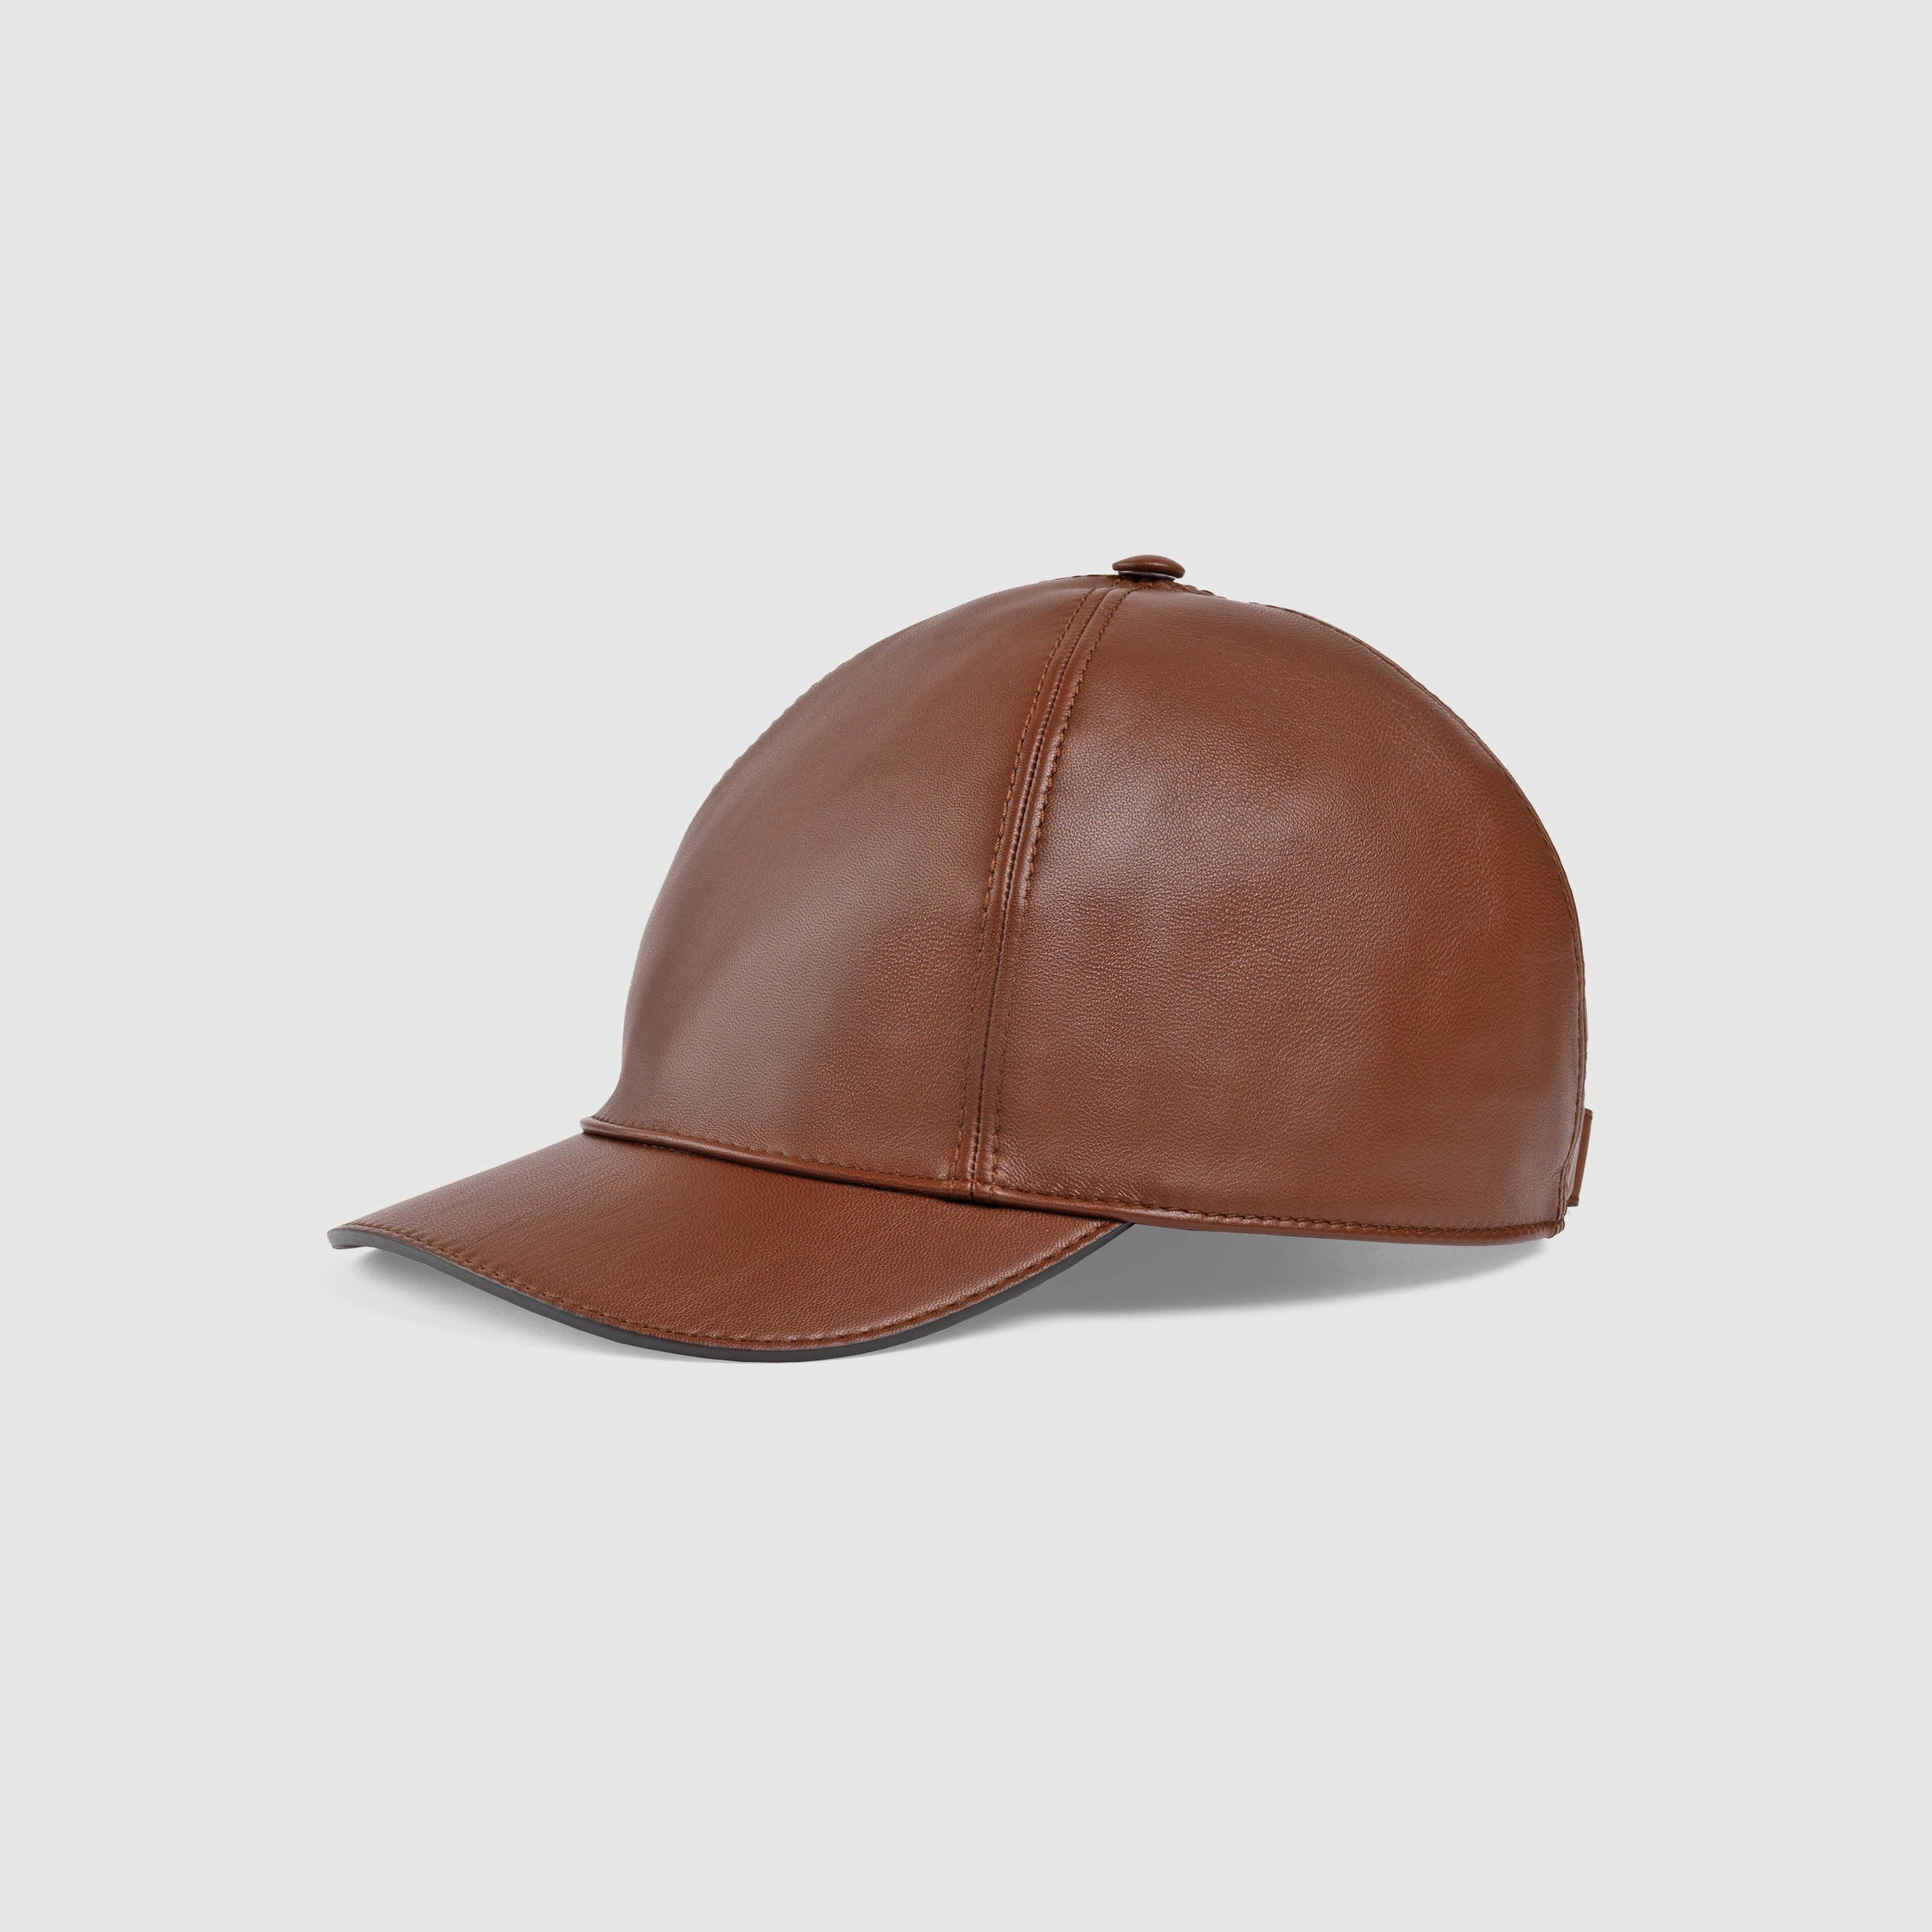 765b32673673 Lyst - Gucci Leather Baseball Hat in Brown for Men